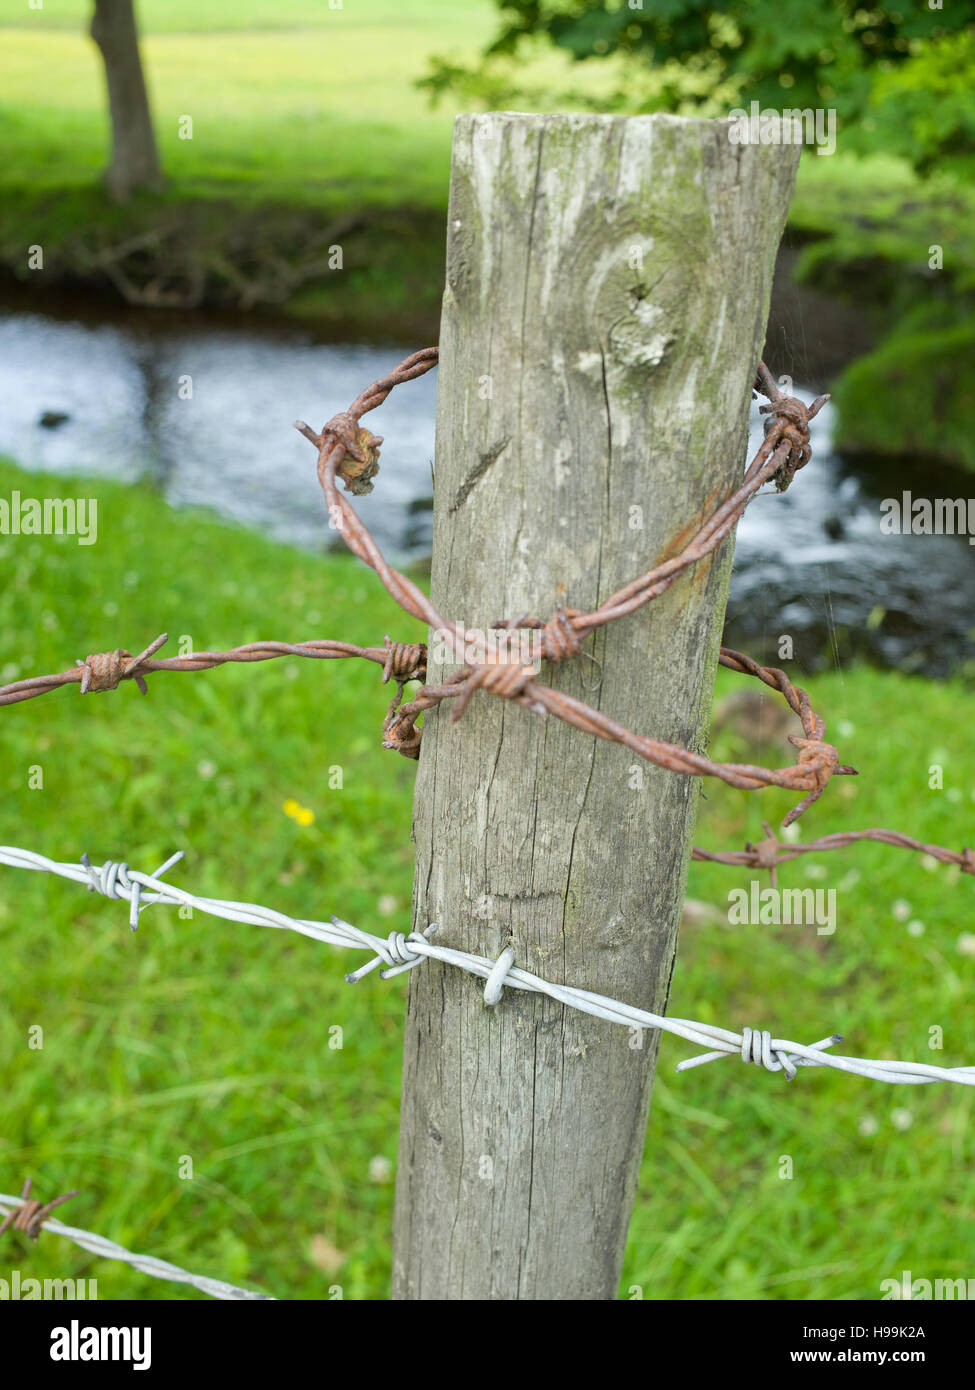 Barbed wire on wooden fence post UK Stock Photo